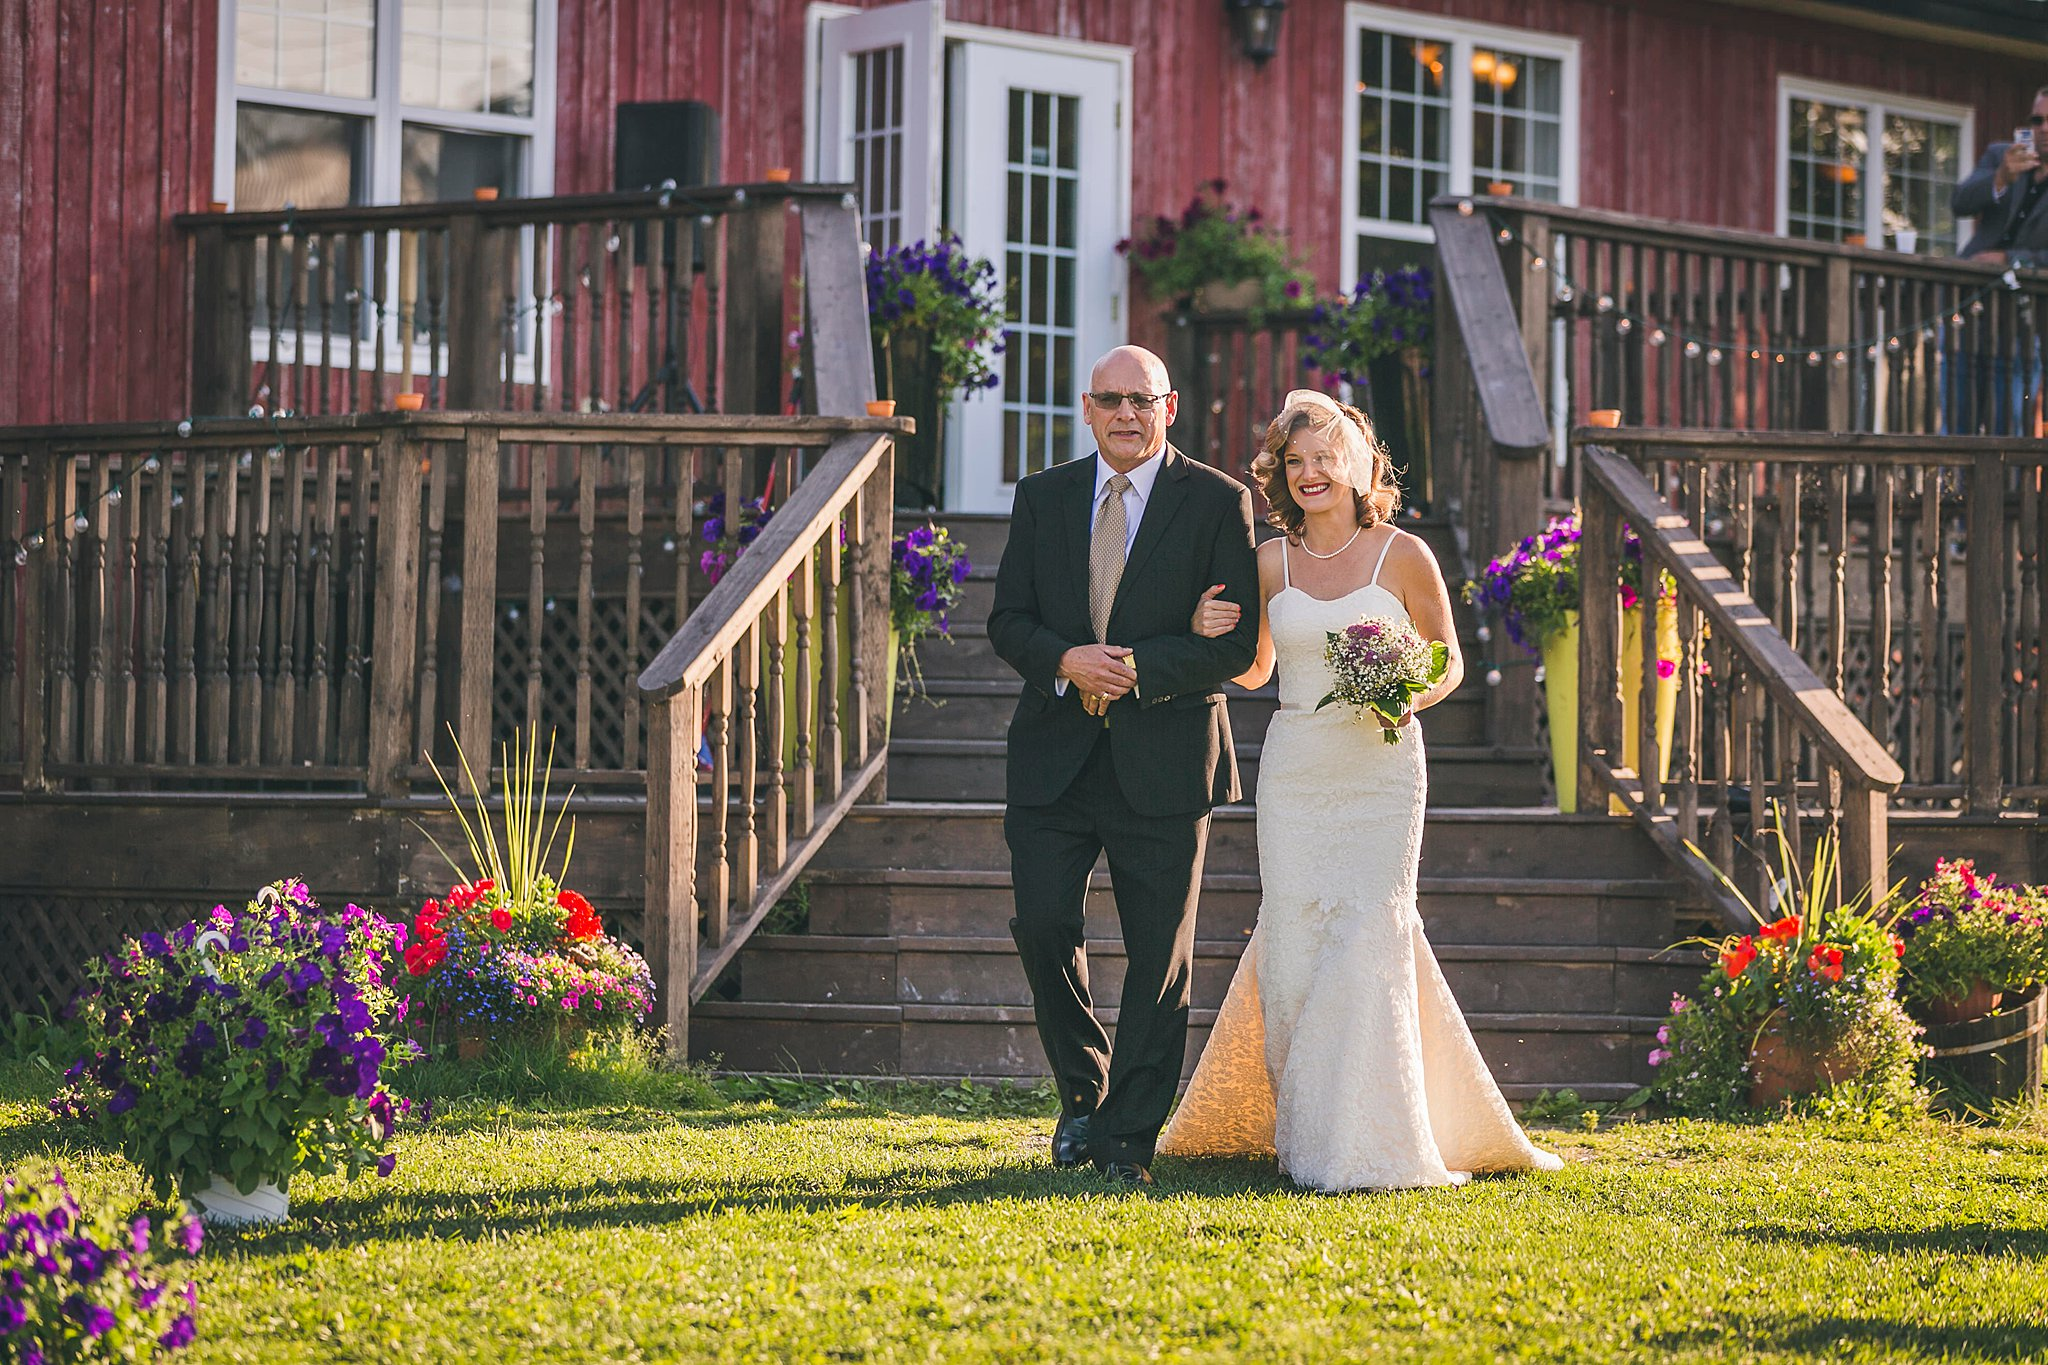 Bride and her father walk to the ceremony at a St. John's, Newfoundland wedding